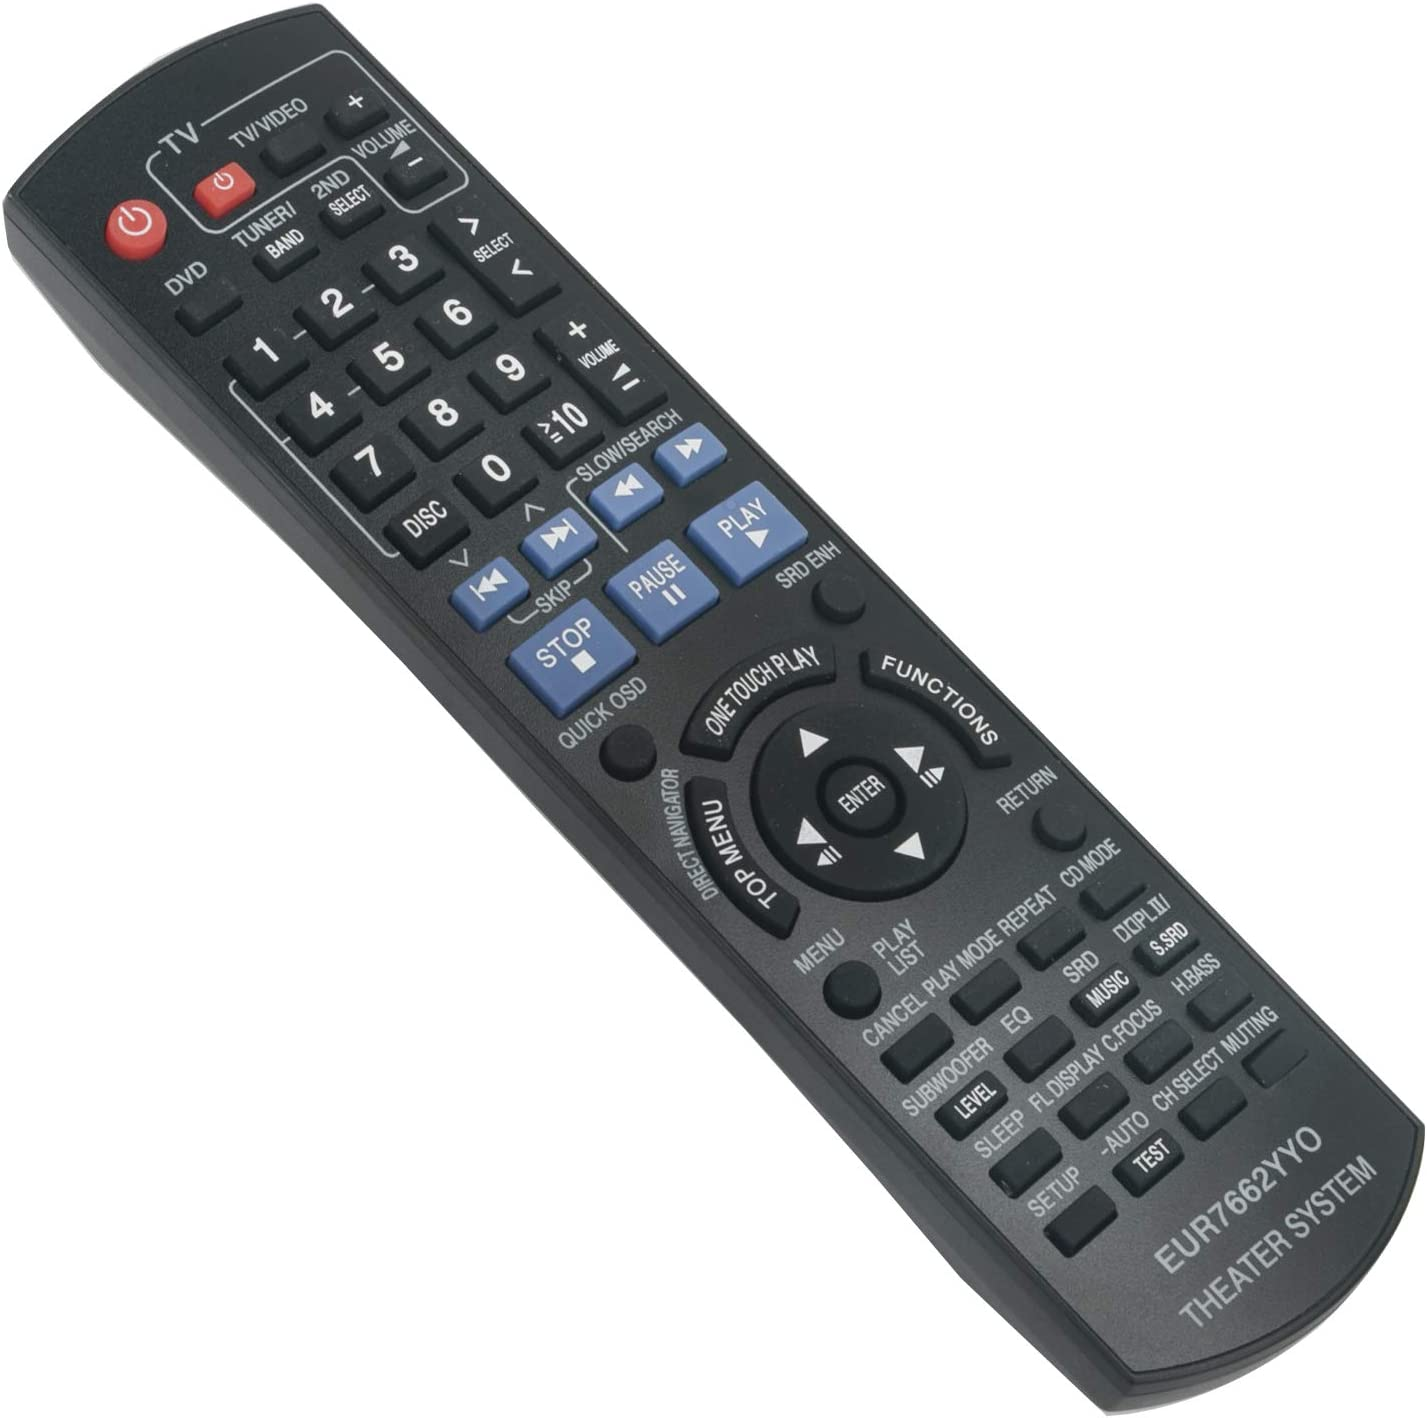 New EUR7662YY0 Replace Remote Control EUR7662YYO fit for Panasonic DVD Home Theater Sound System SA-PT1050 SA-PT950 SA-PT950P SA-PT950PC SB-HC950 SB-HF1050 SB-HF950 SB-HS1050 SB-HS950 SB-HW950